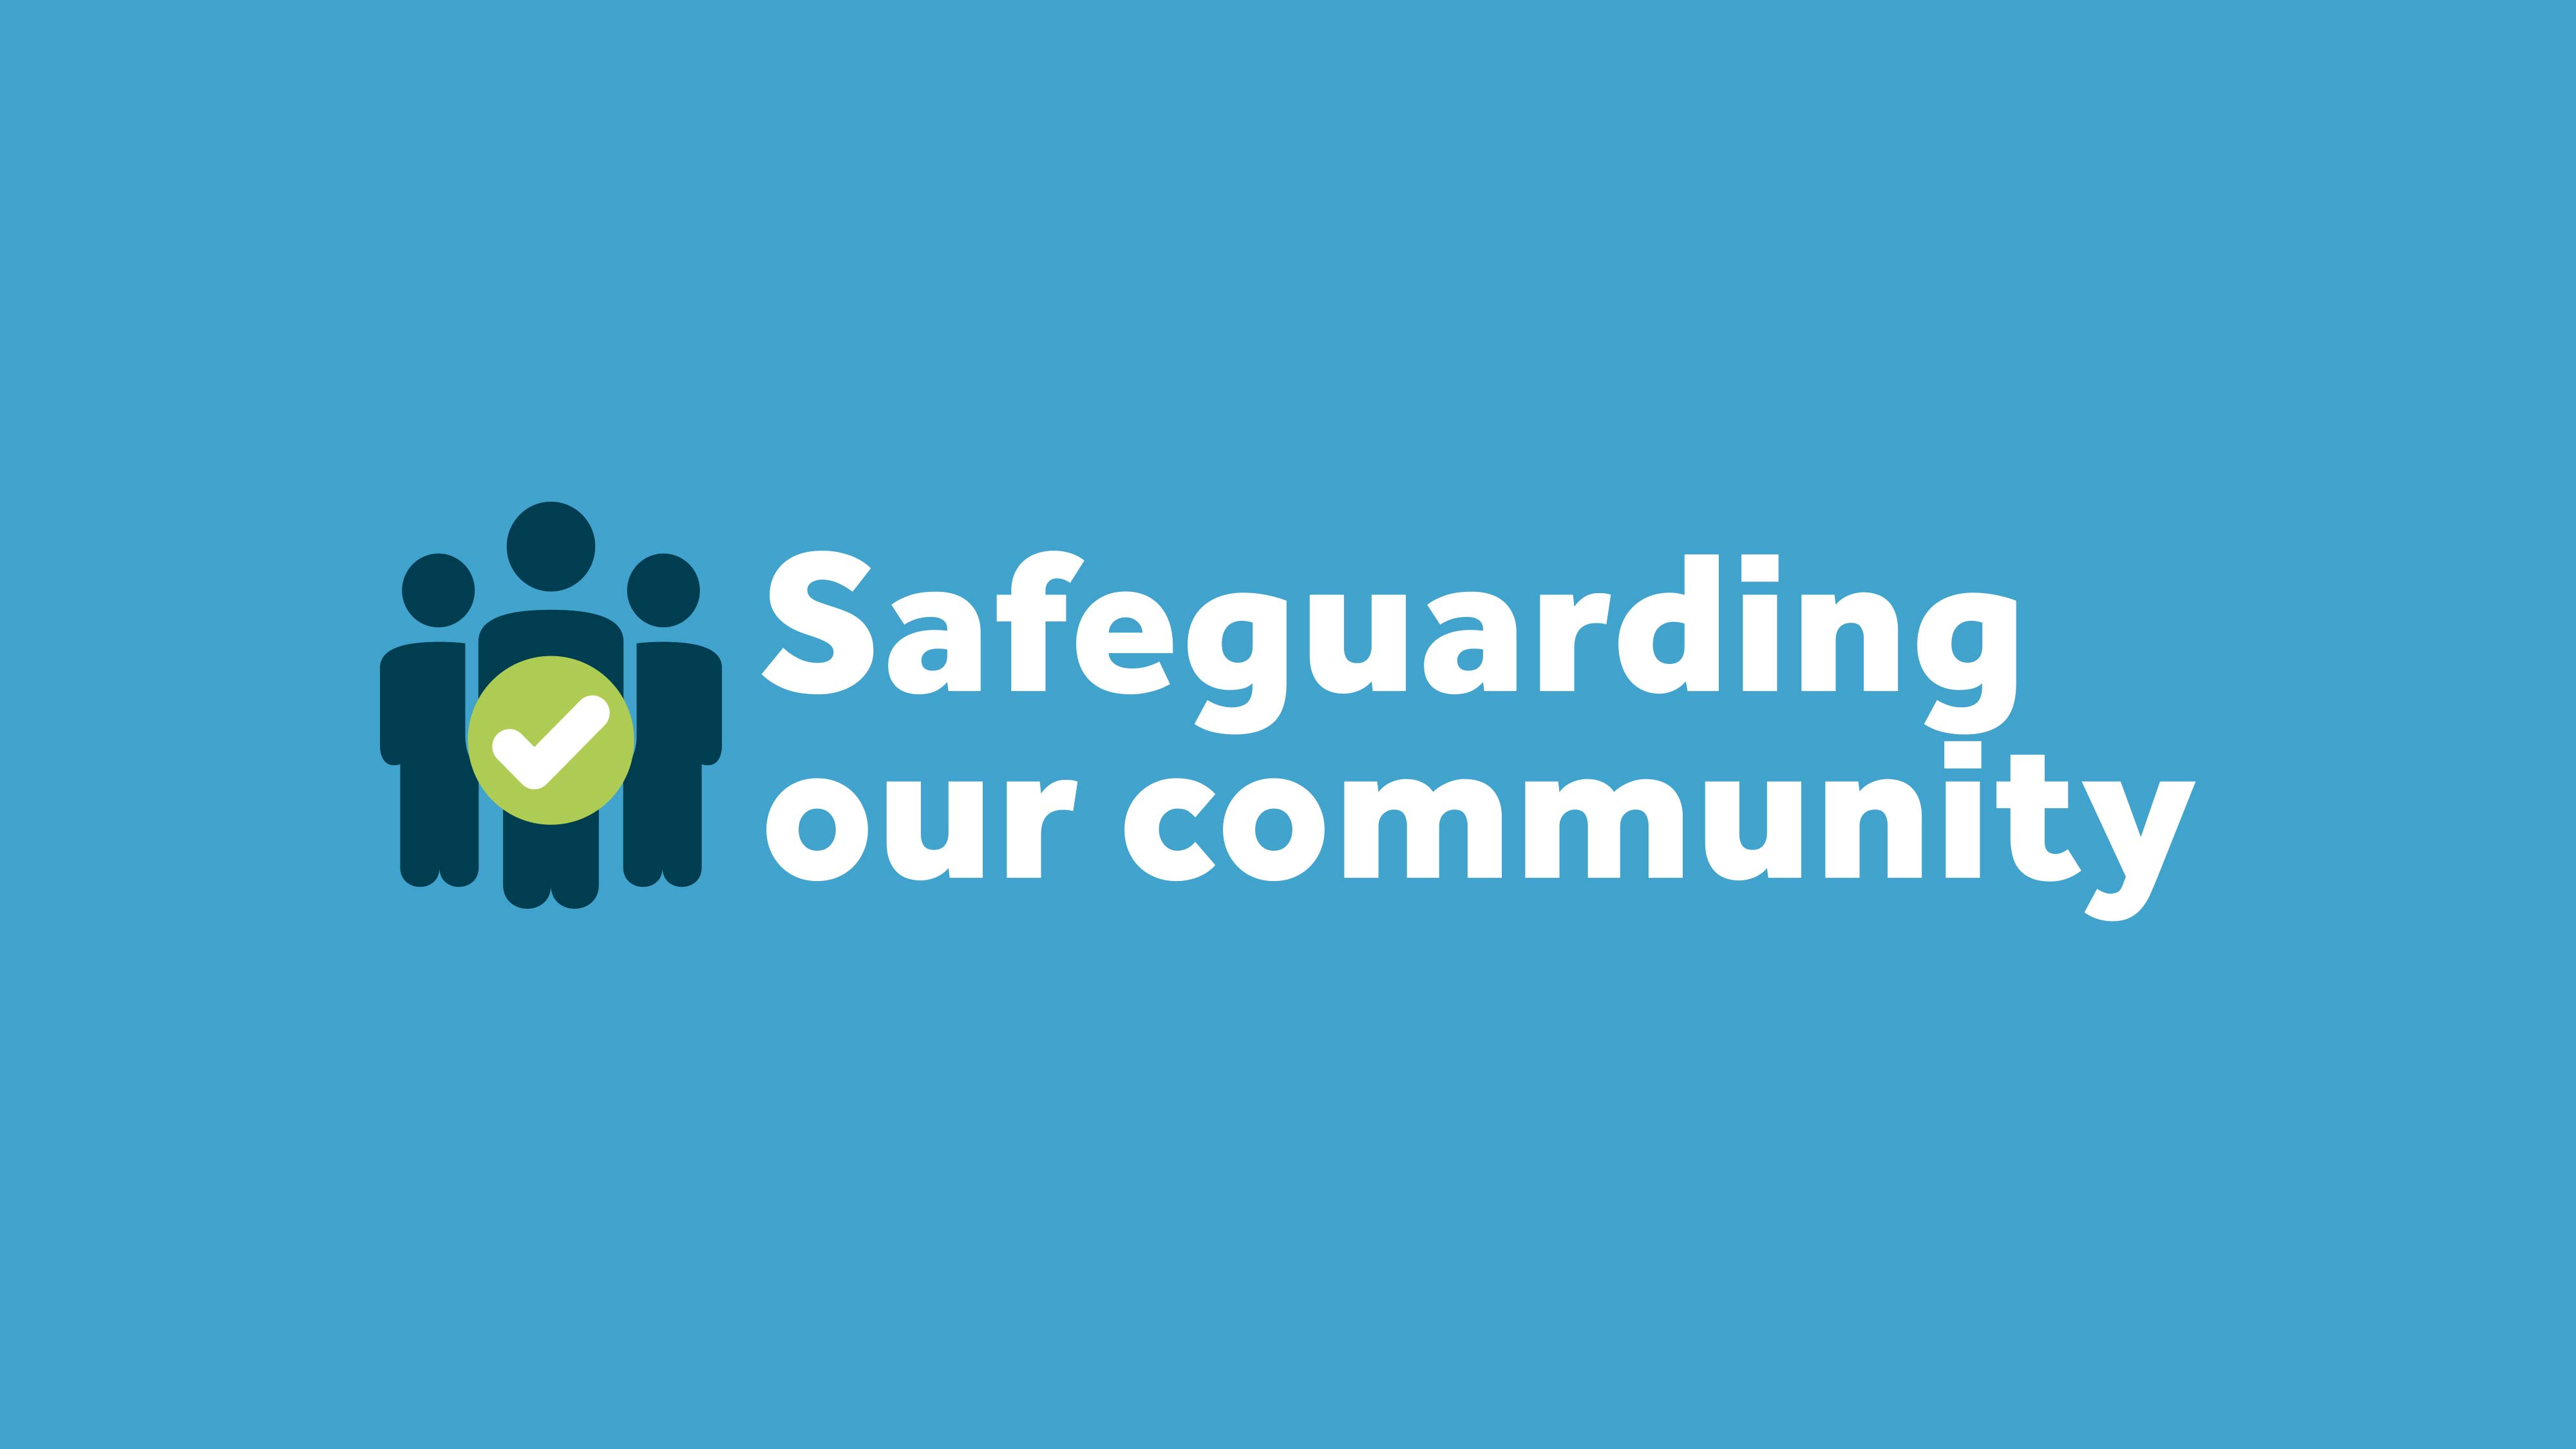 Safeguarding our community logo